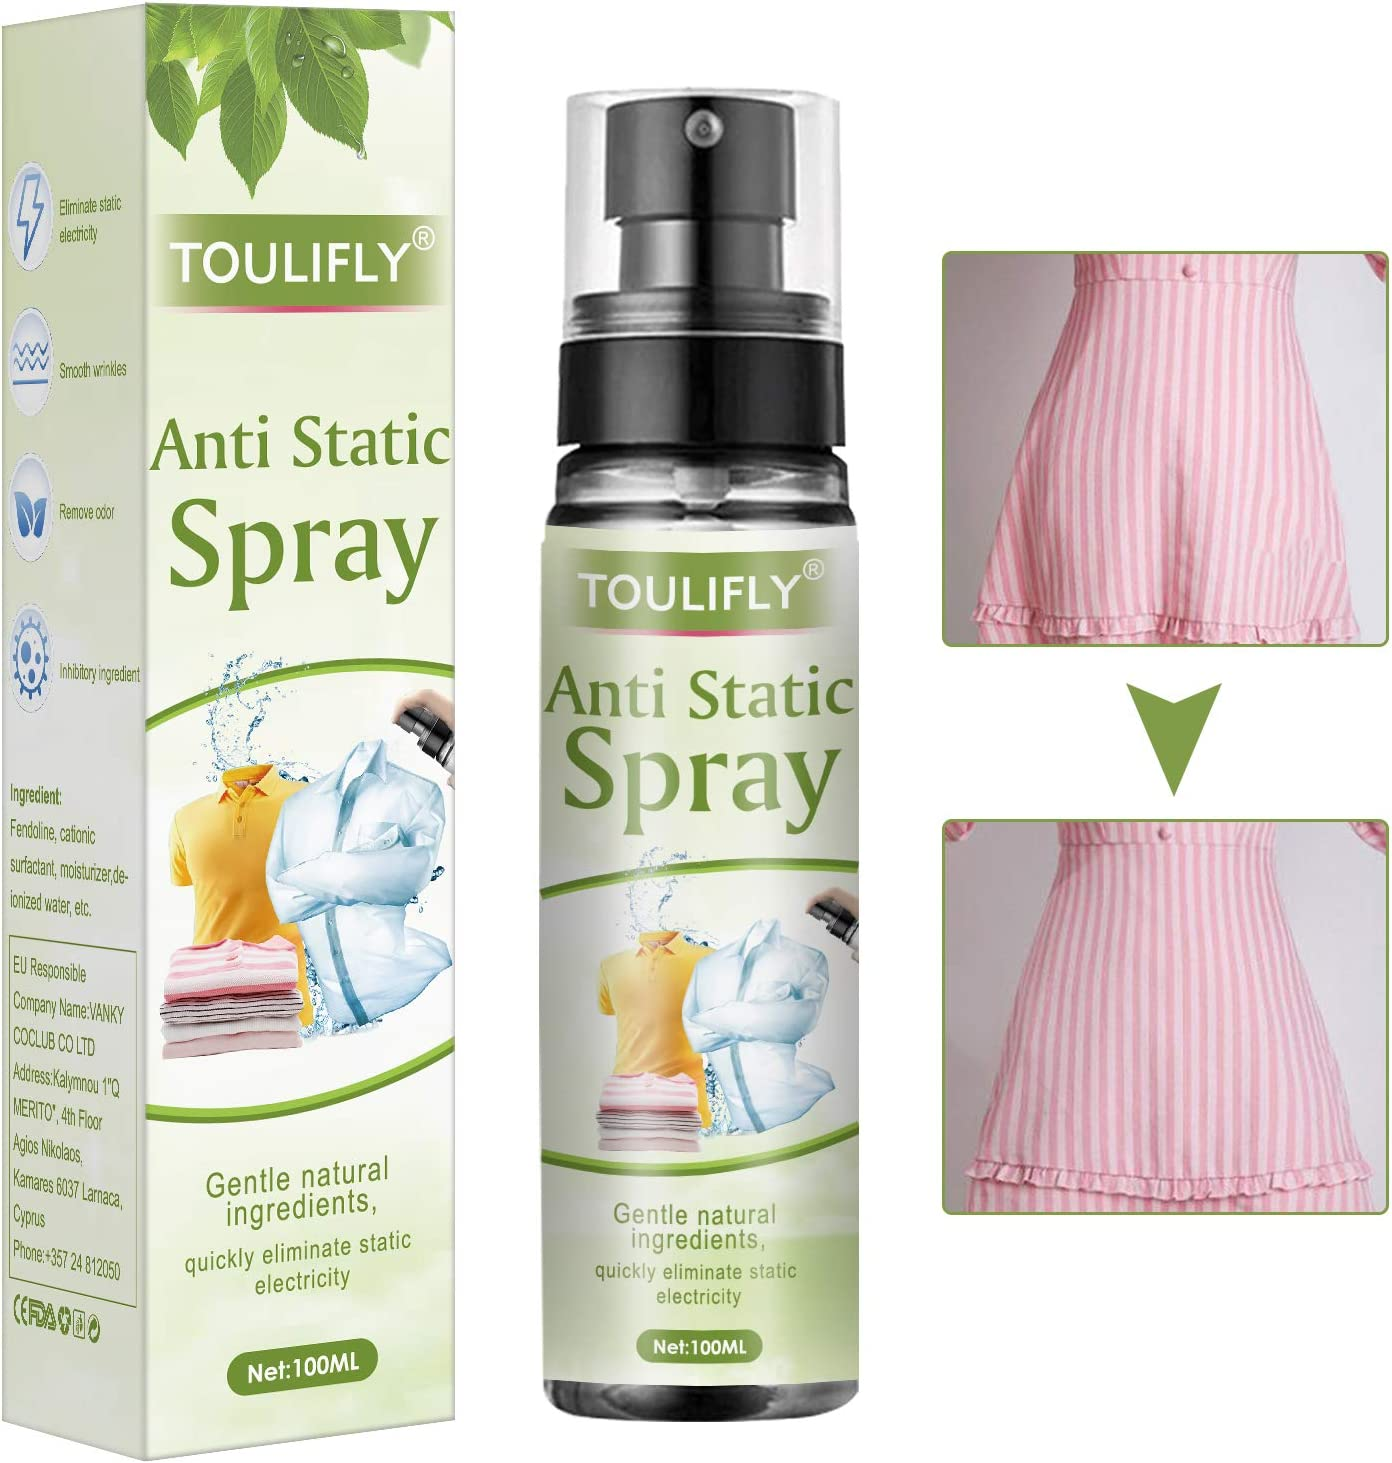 Anti Static Spray,Anti Static Spray for Clothes,Static Remover for Clothes,Static Eliminator Spray,Static Cling Remover,Reduce Static Cling for Clothes,Furniture and Car,100ML